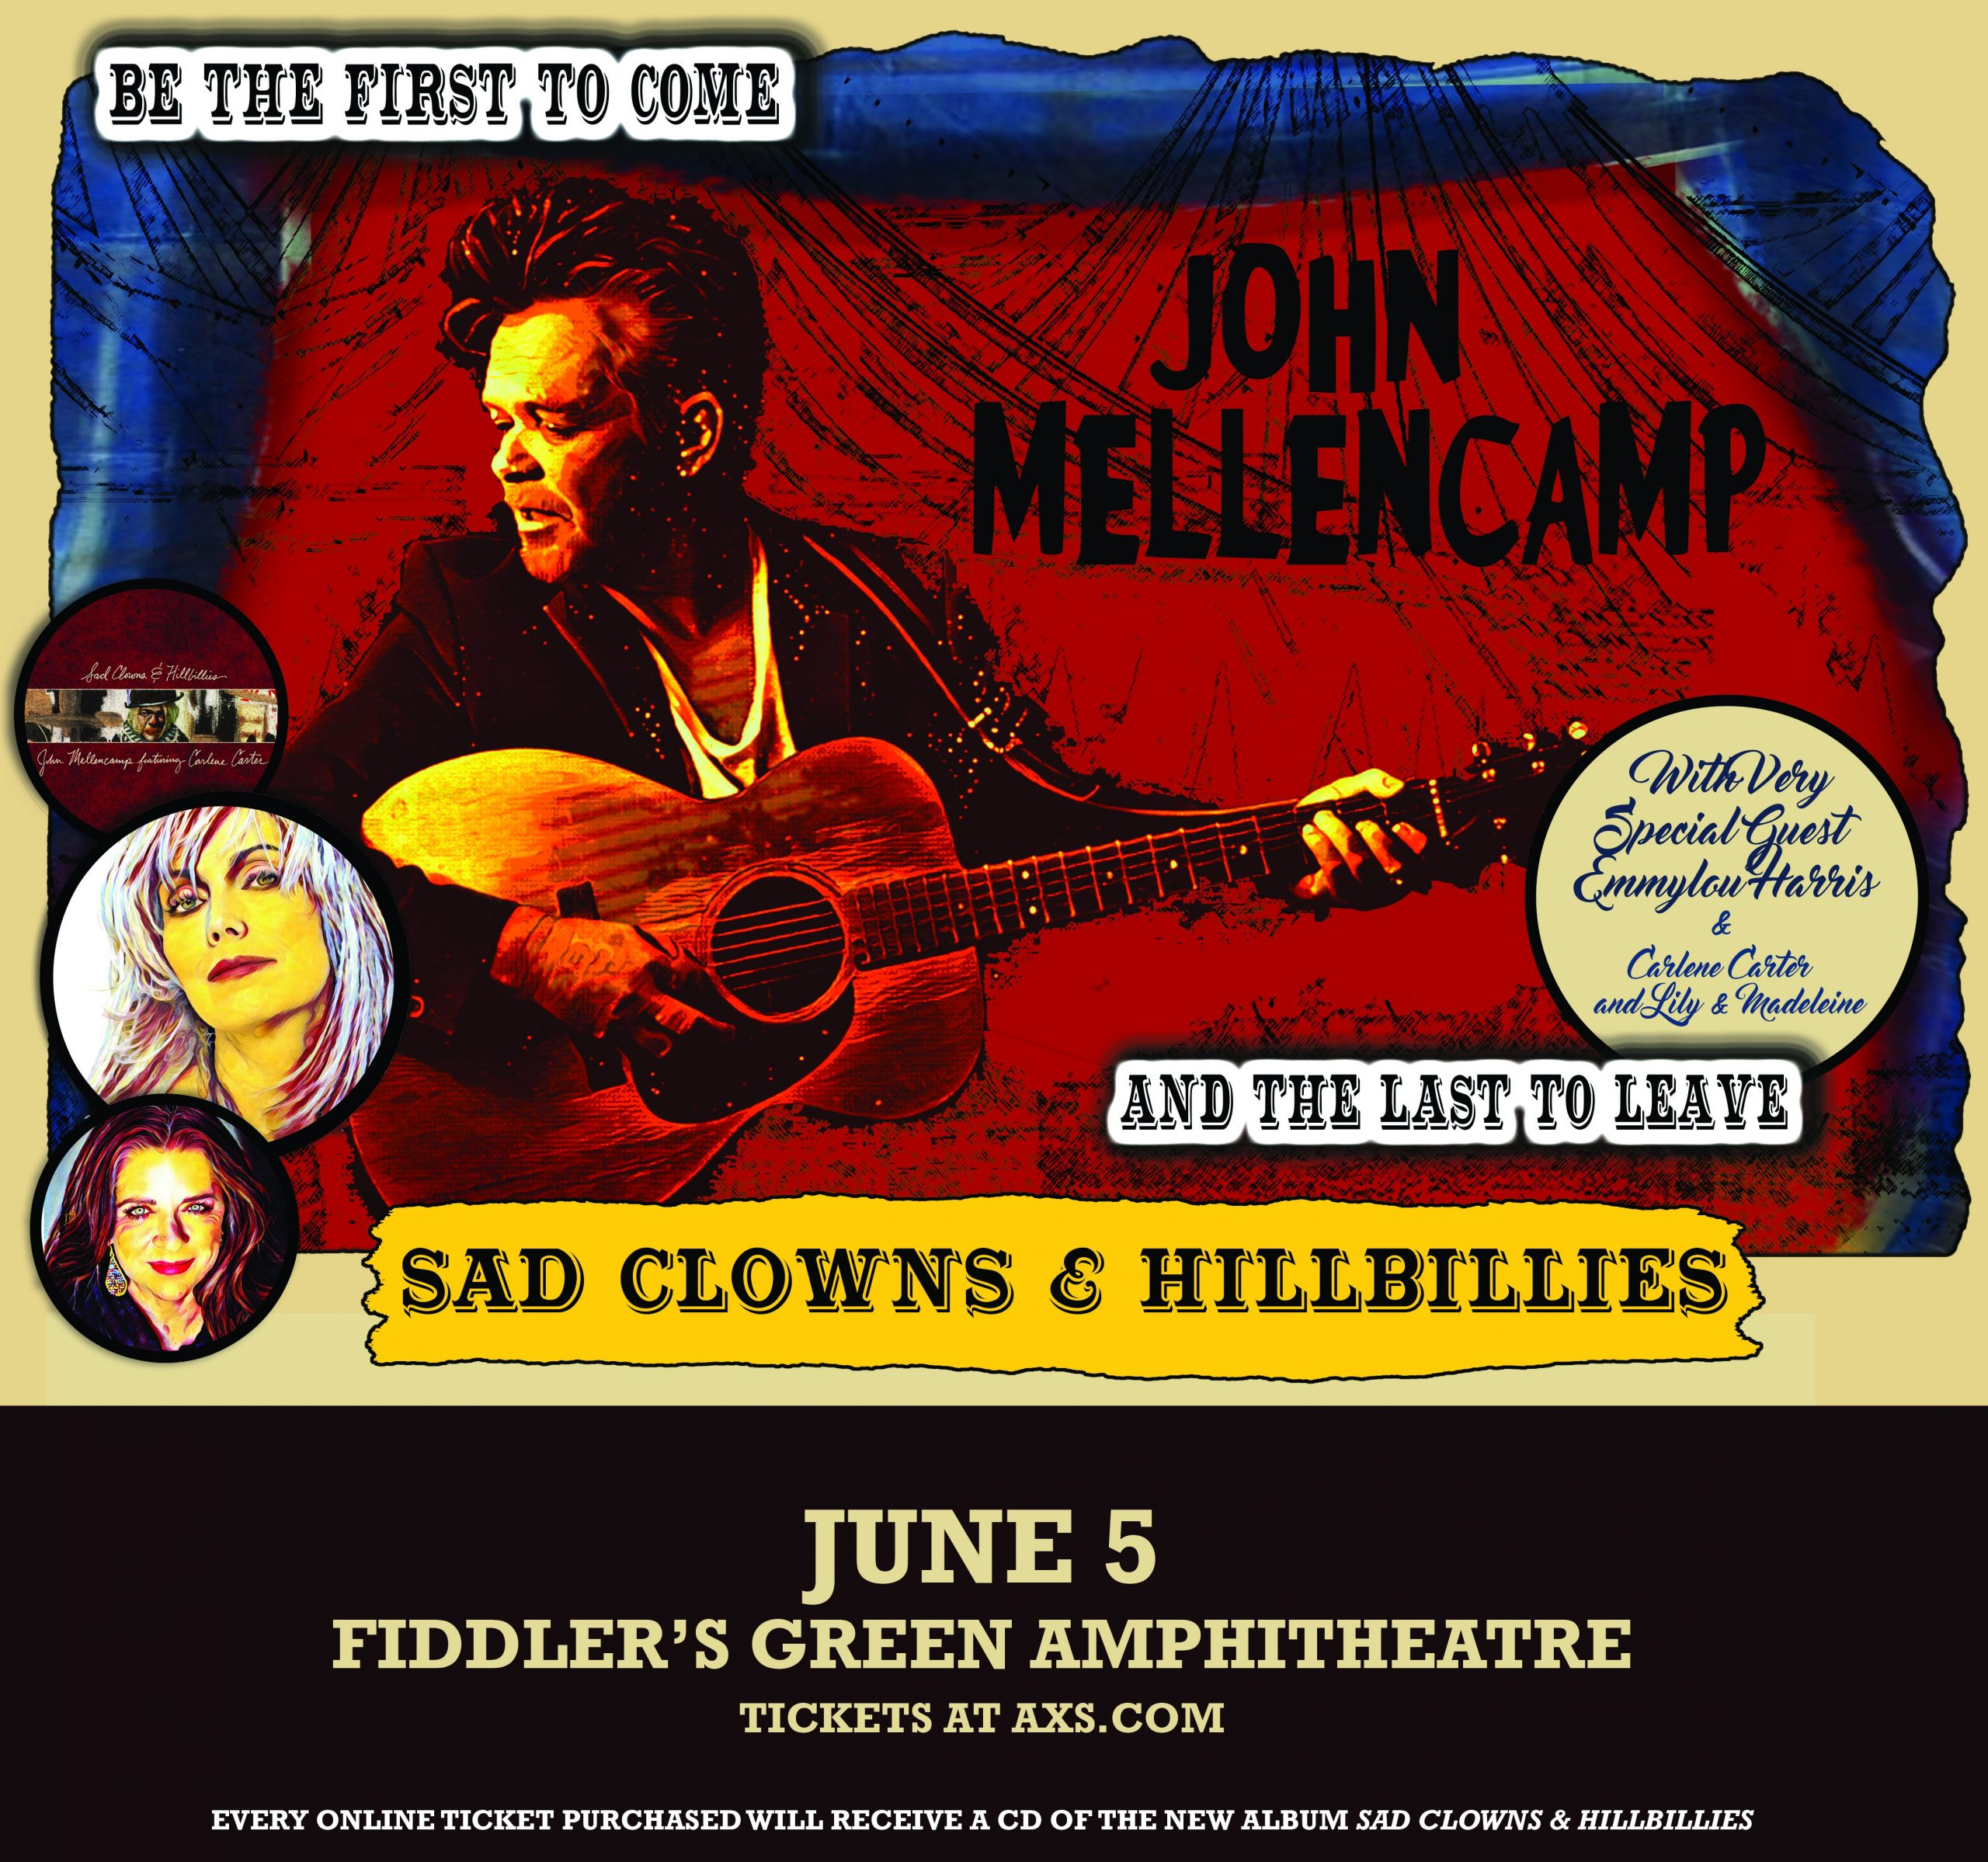 johnmellencamp-admat-feb17-cmyk